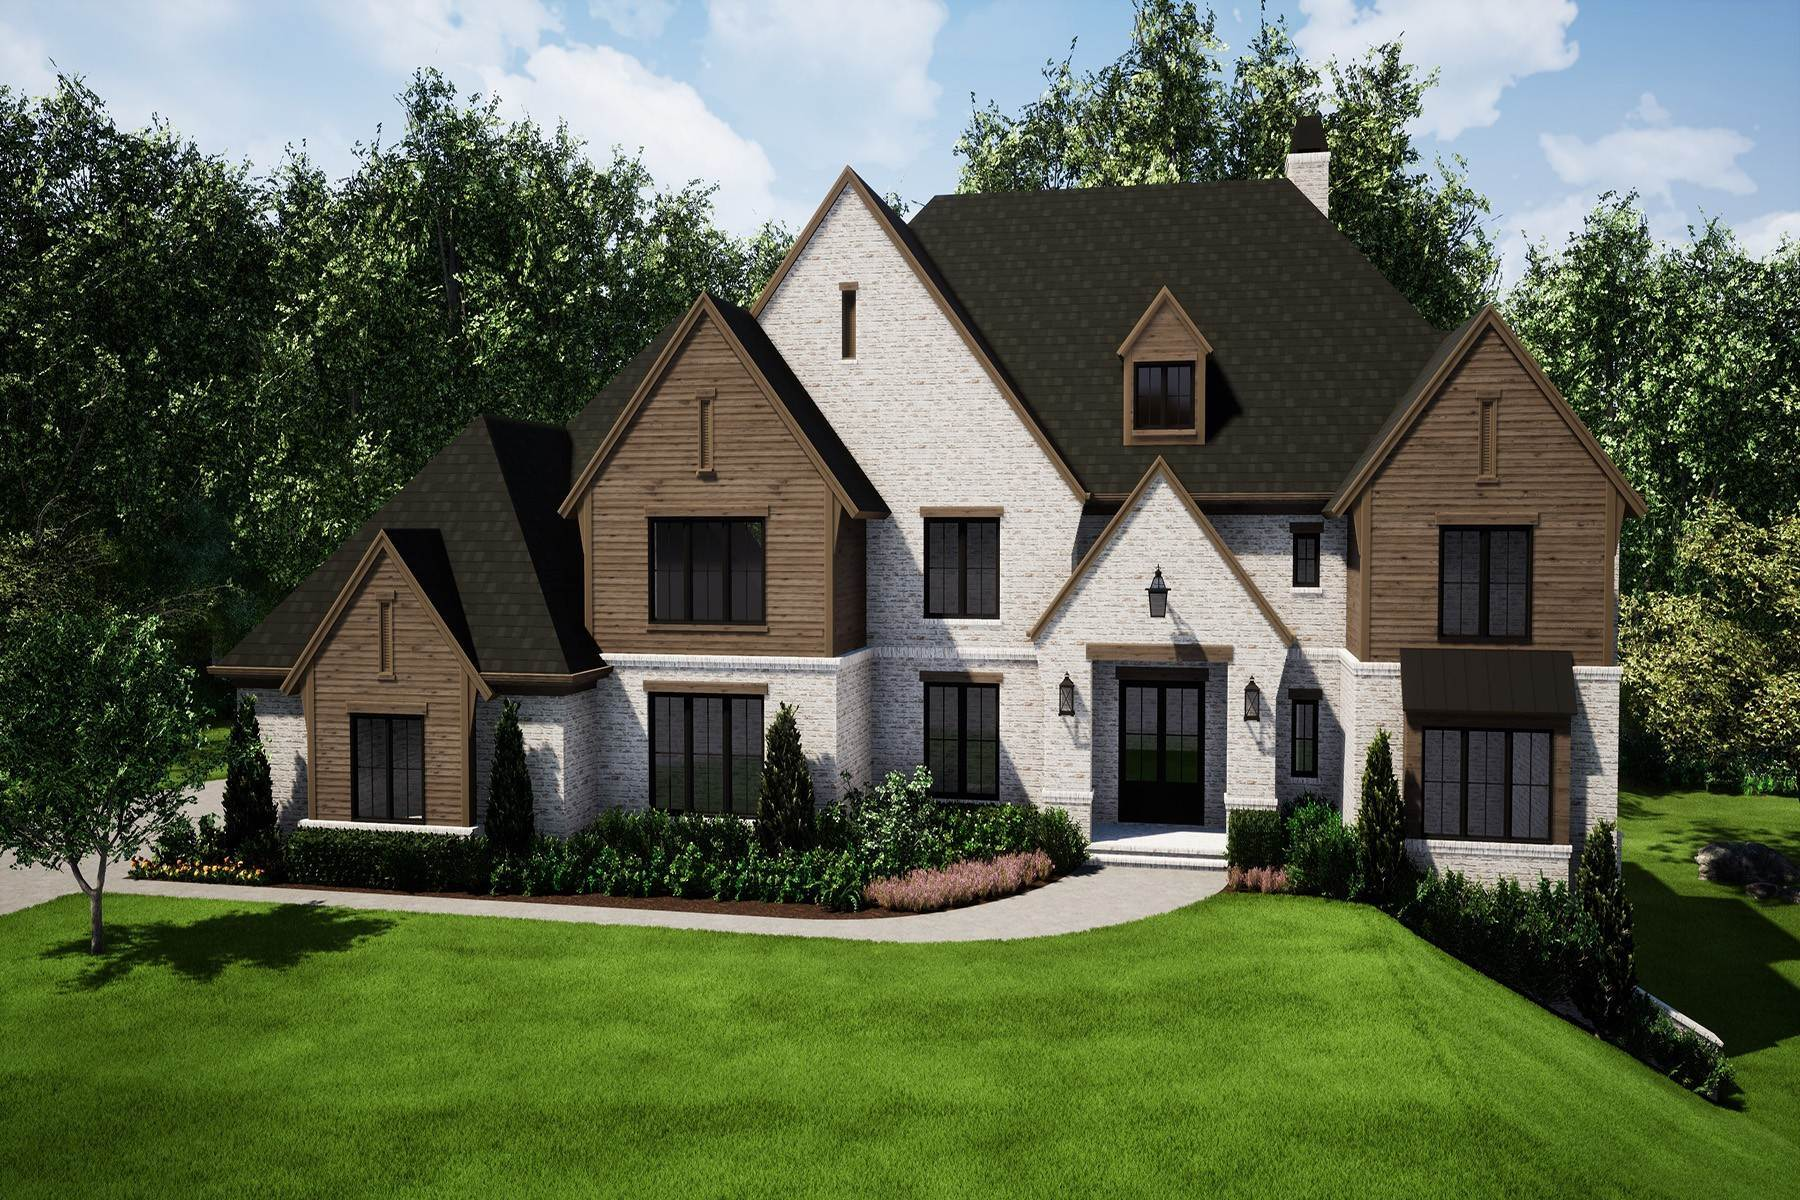 Single Family Homes for Active at New Construction Masterpiece in Gated Milton Neighborhood 10220 Cedar Ridge Drive Milton, Georgia 30004 United States